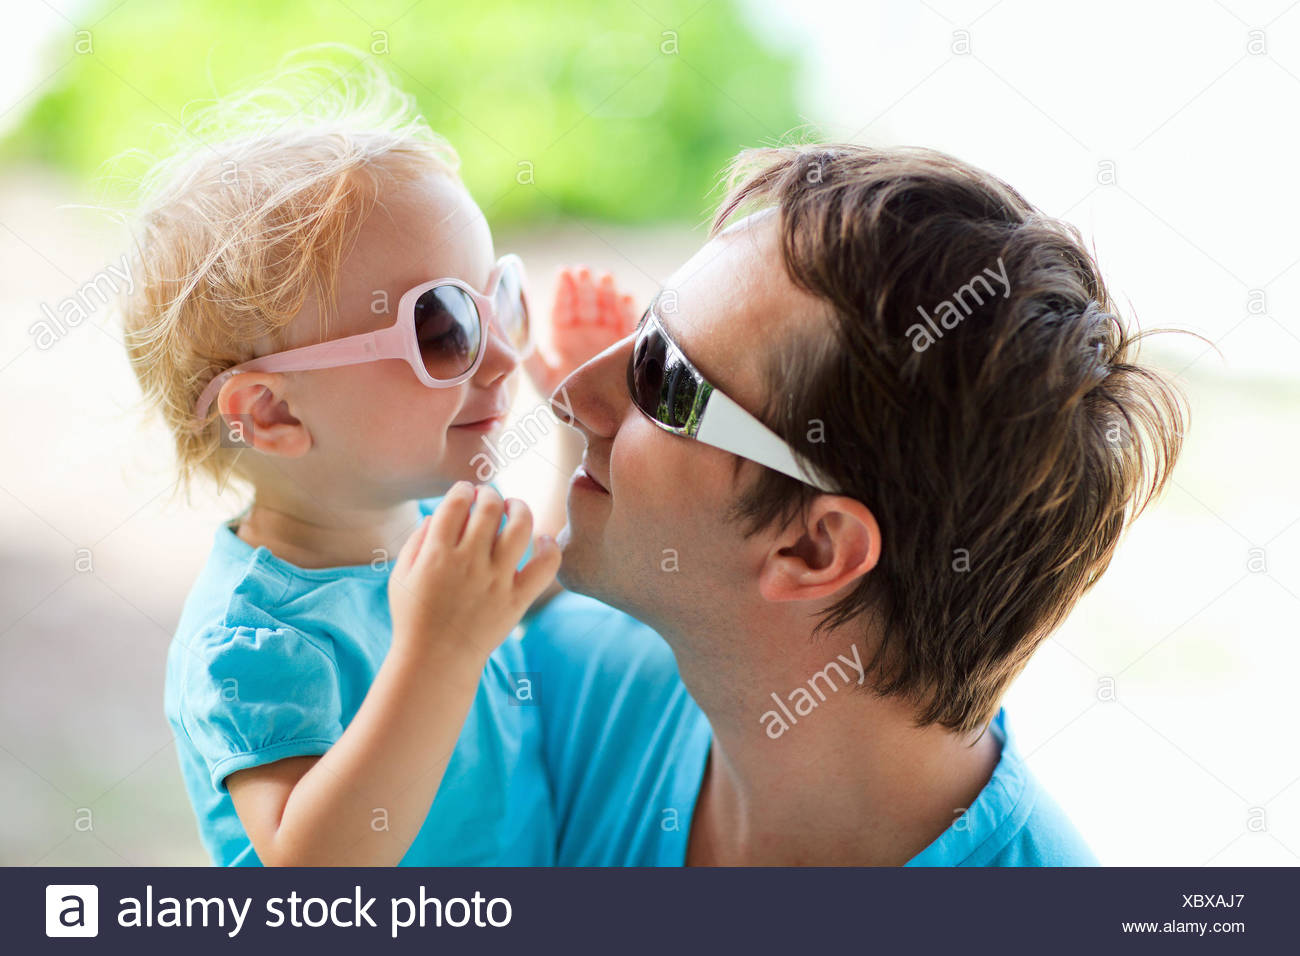 young father and the little daughter on his arm happily looking into each other's eyes through their sunglasses - Stock Image